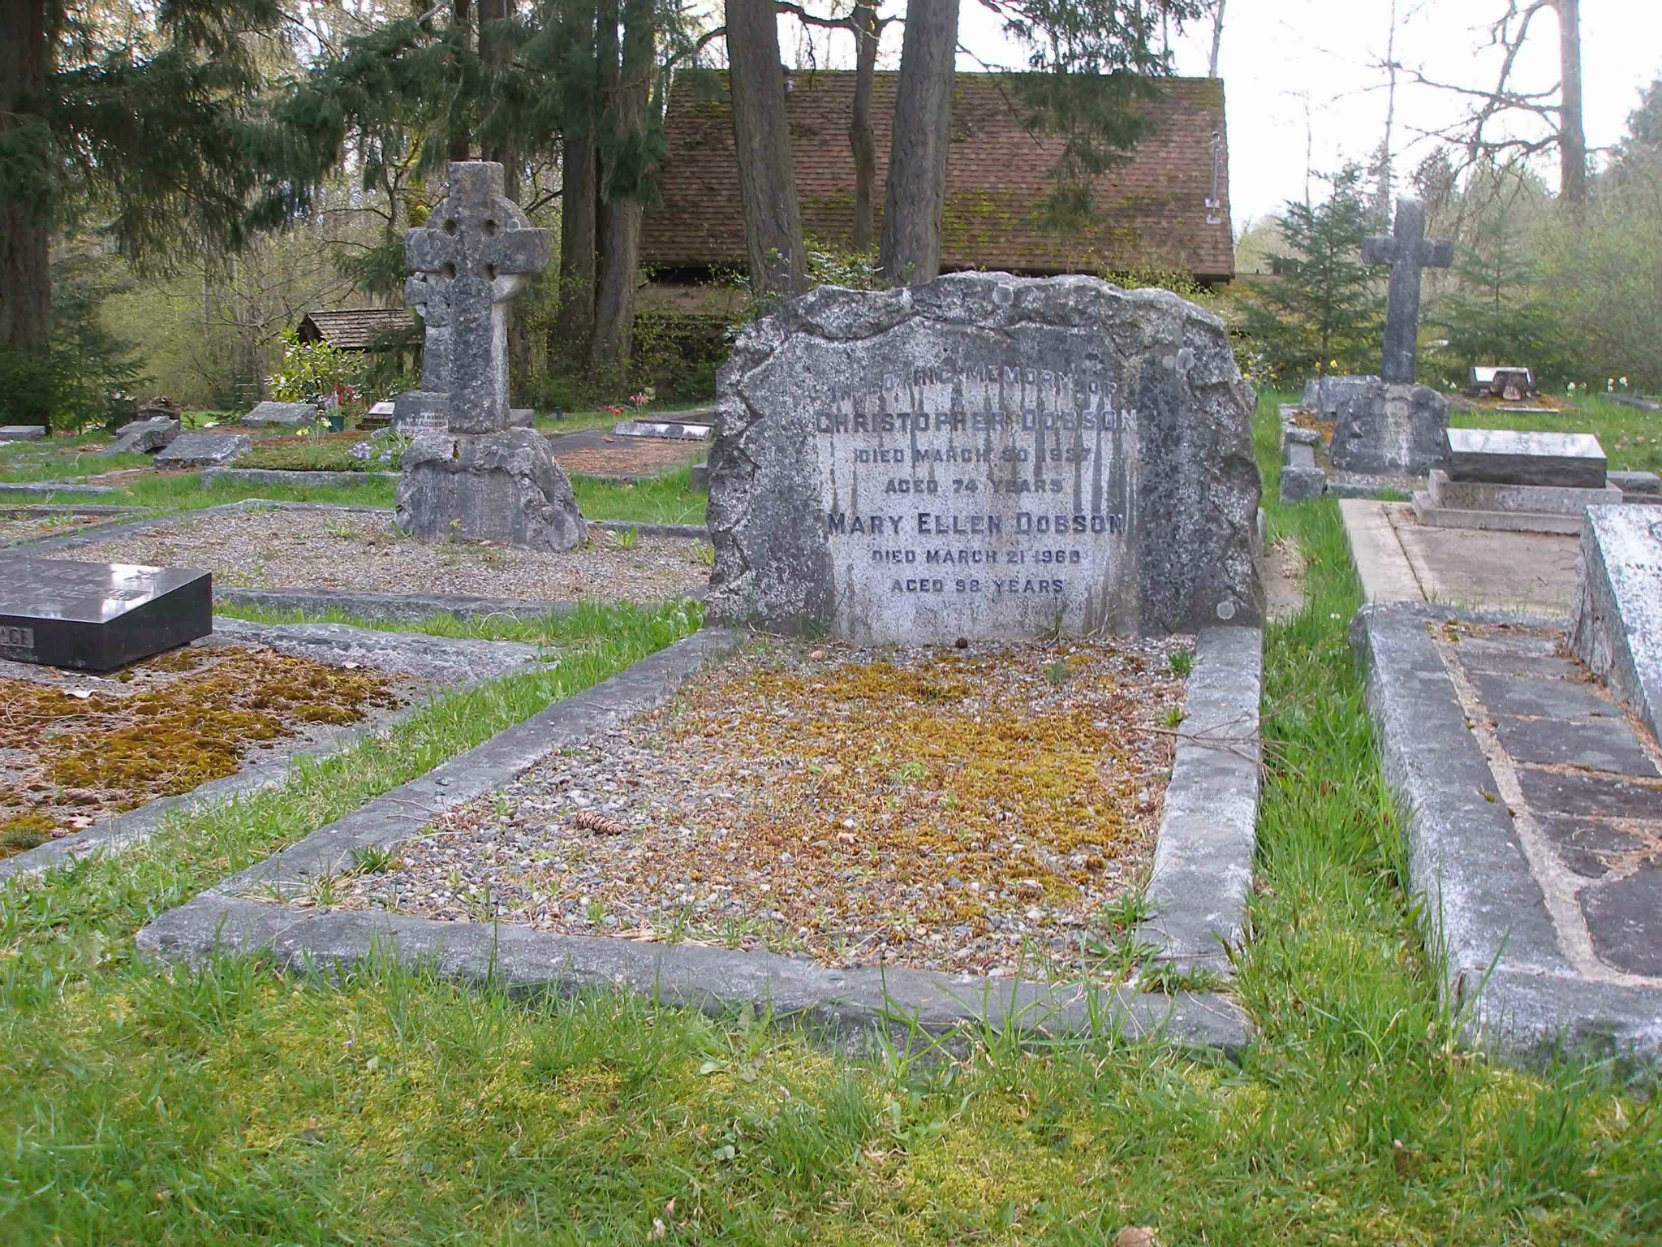 Christopher Dobson grave, St. Peter's Quamichan Anglican cemetery